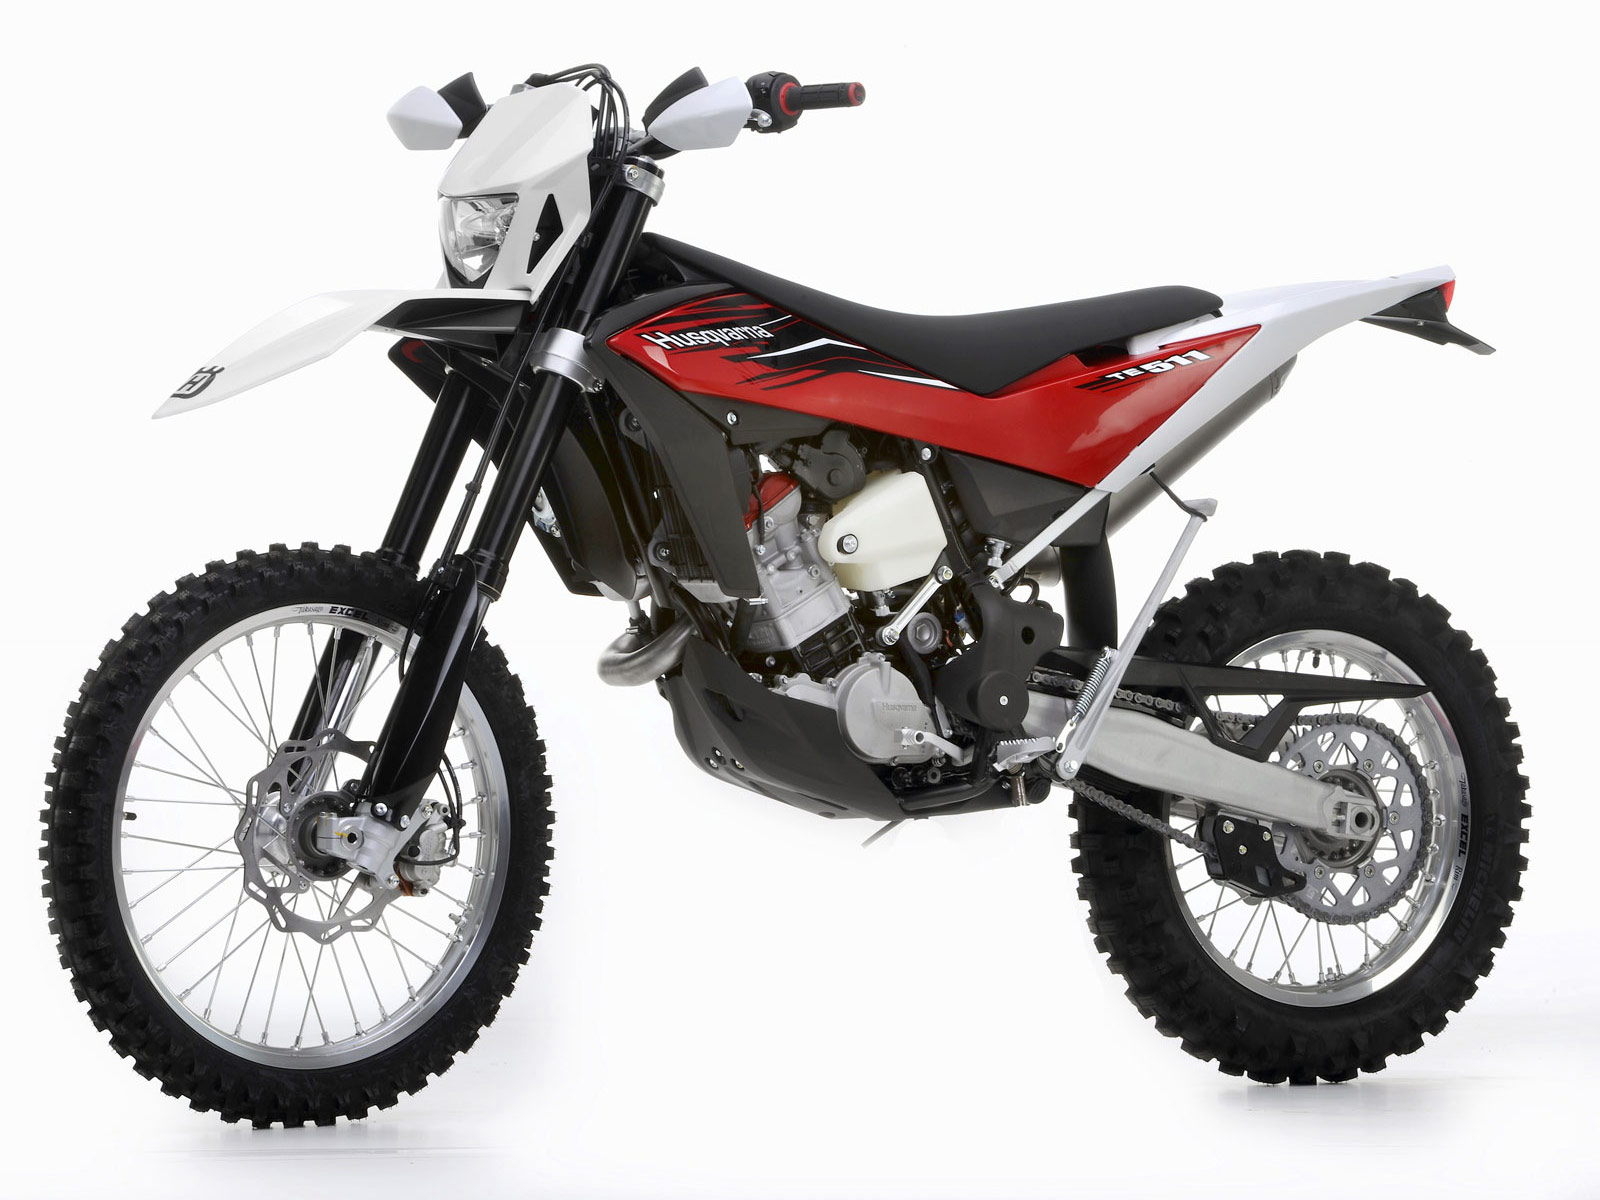 Husqvarna te511 photo - 6